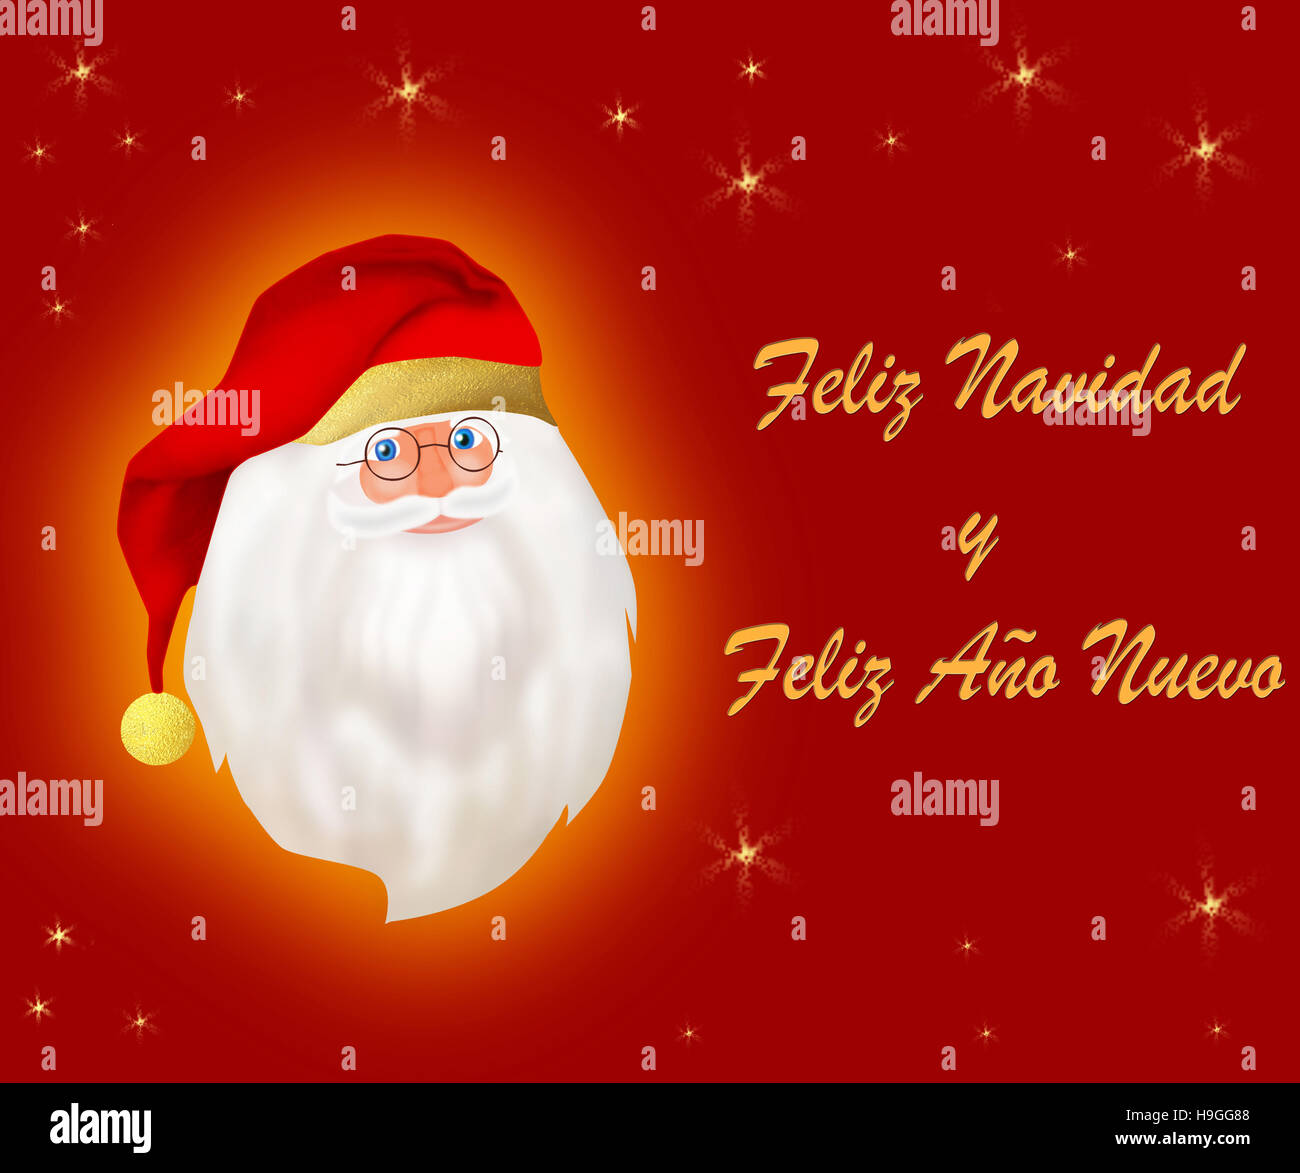 merry christmas and a happy new year spanish card stock image - Merry Christmas And Happy New Year In Spanish